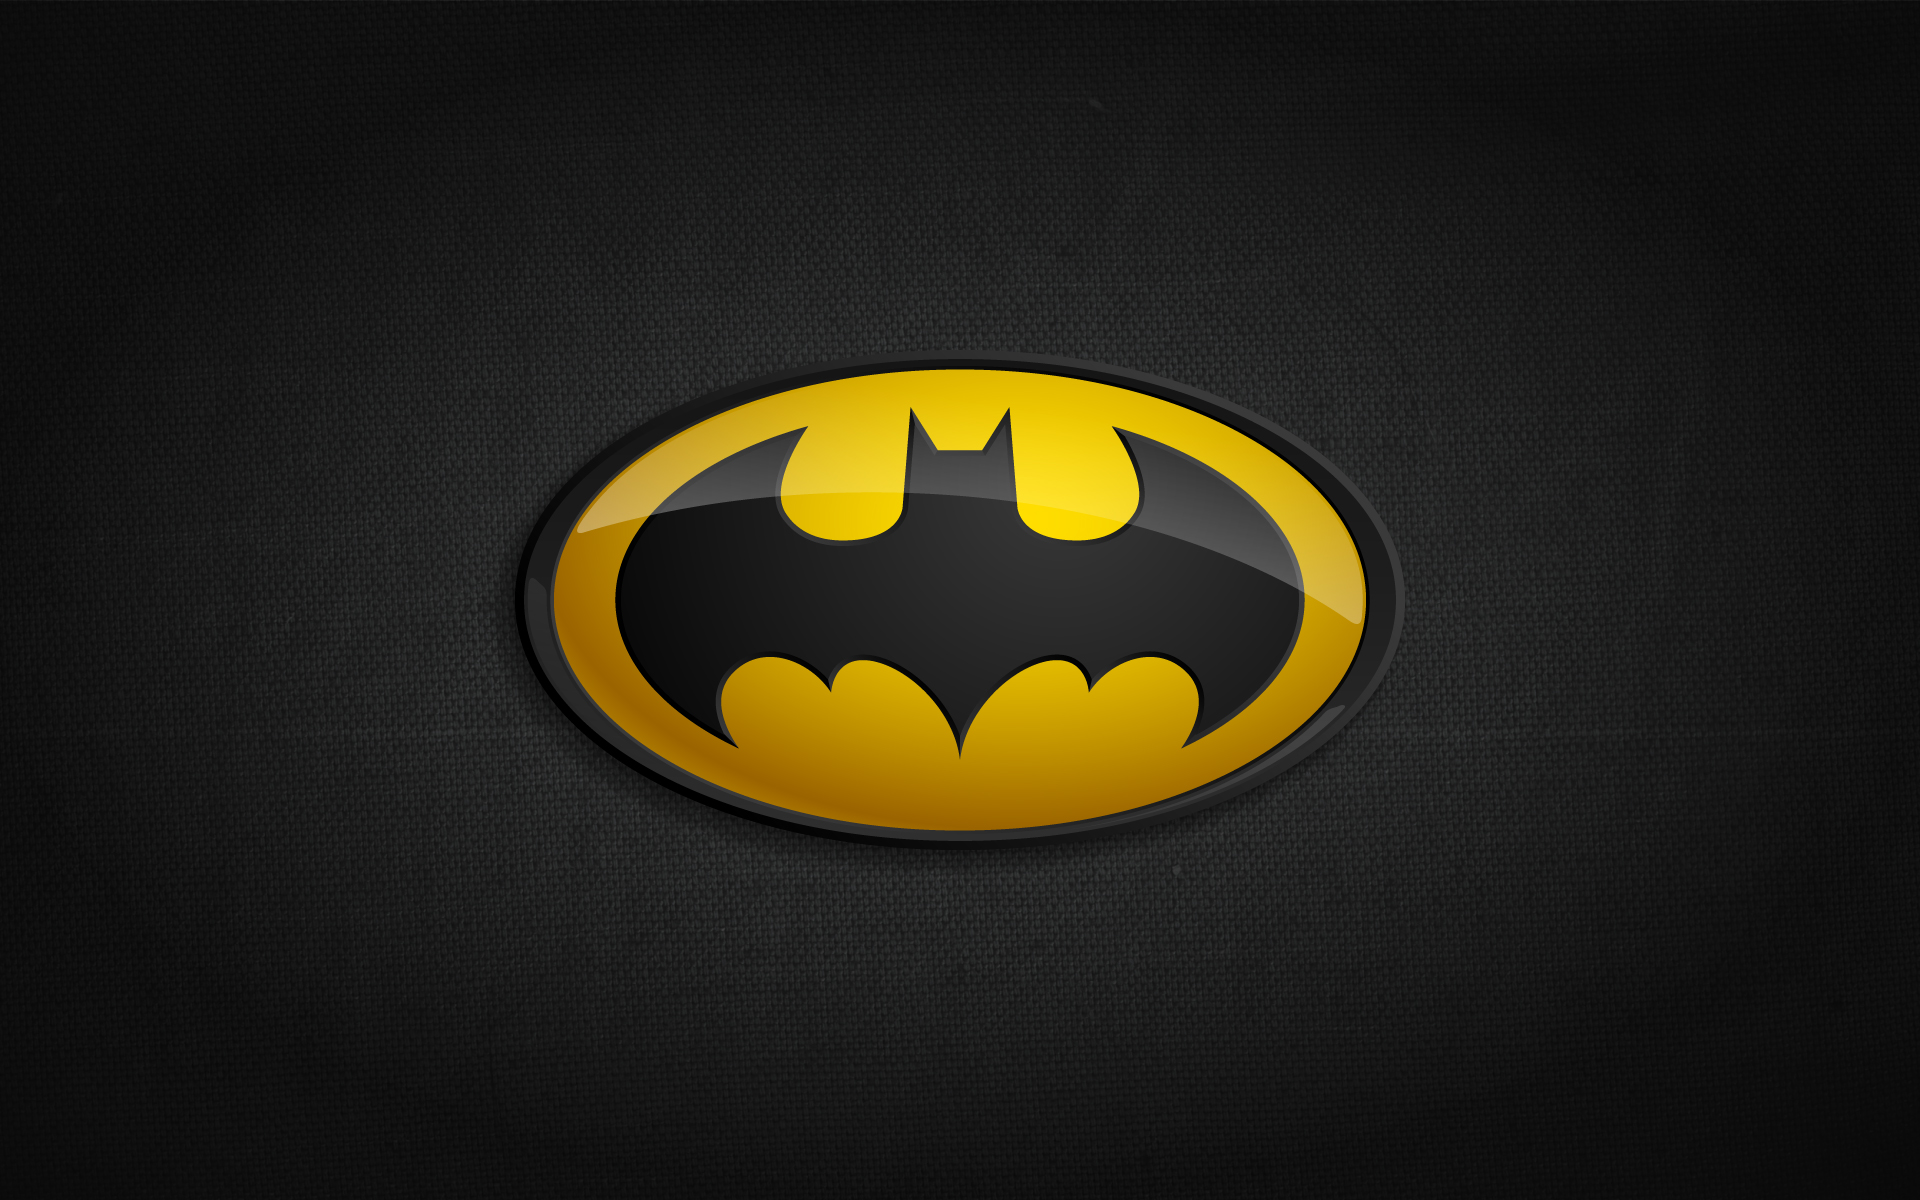 Description: Batman Logo Wallpaper is Wallapers for pc desktop,laptop ...